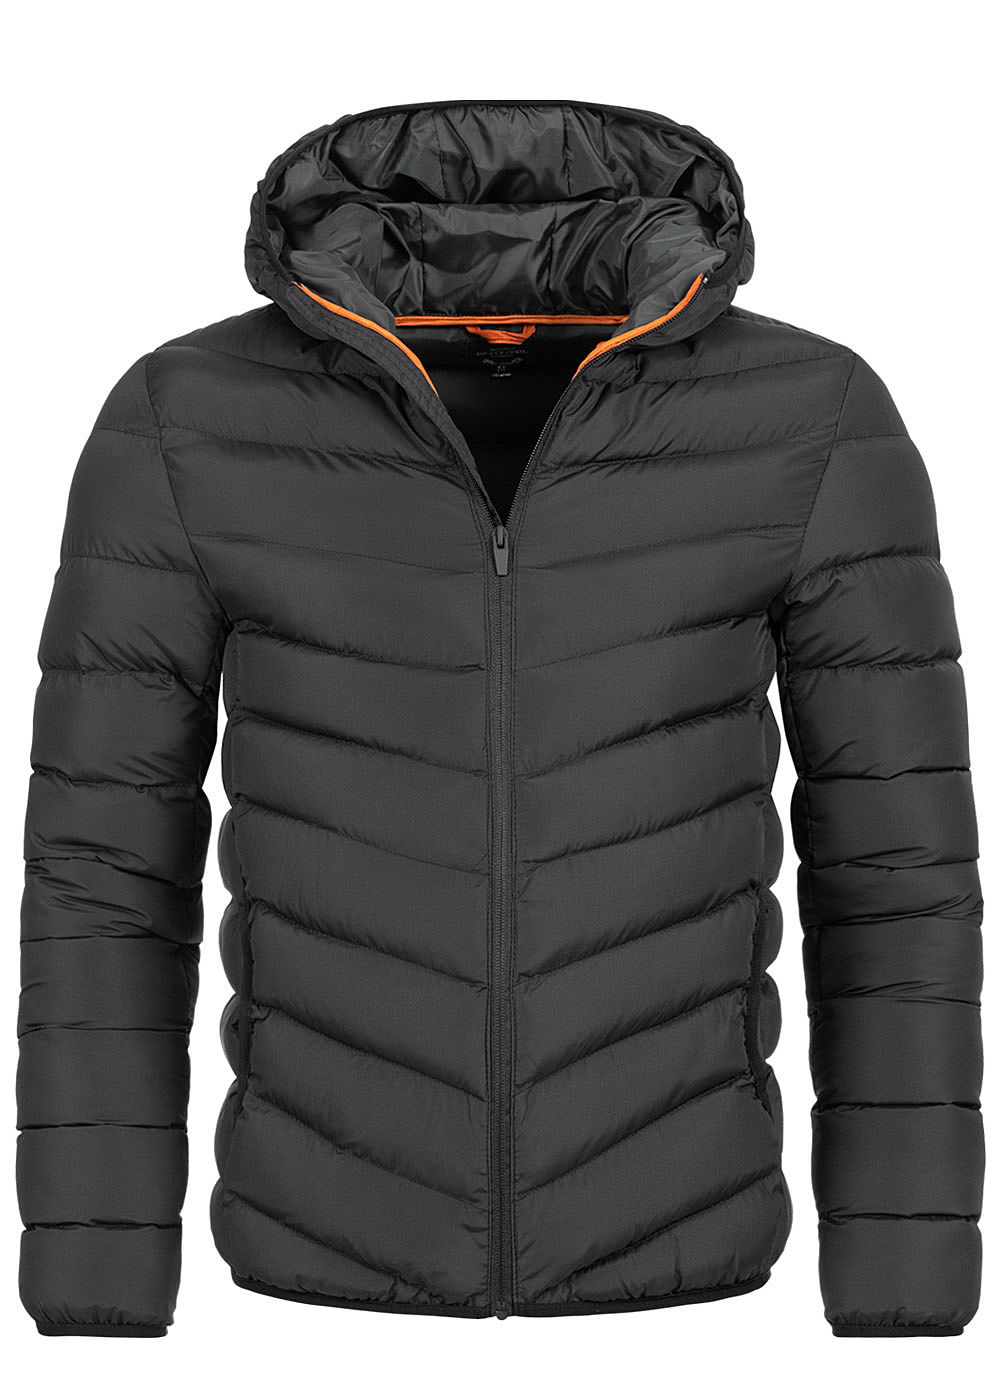 Brave Soul Herren Winter Steppjacke Kapuze 2-Pockets unicolor schwarz - Art.-Nr.: 20094331